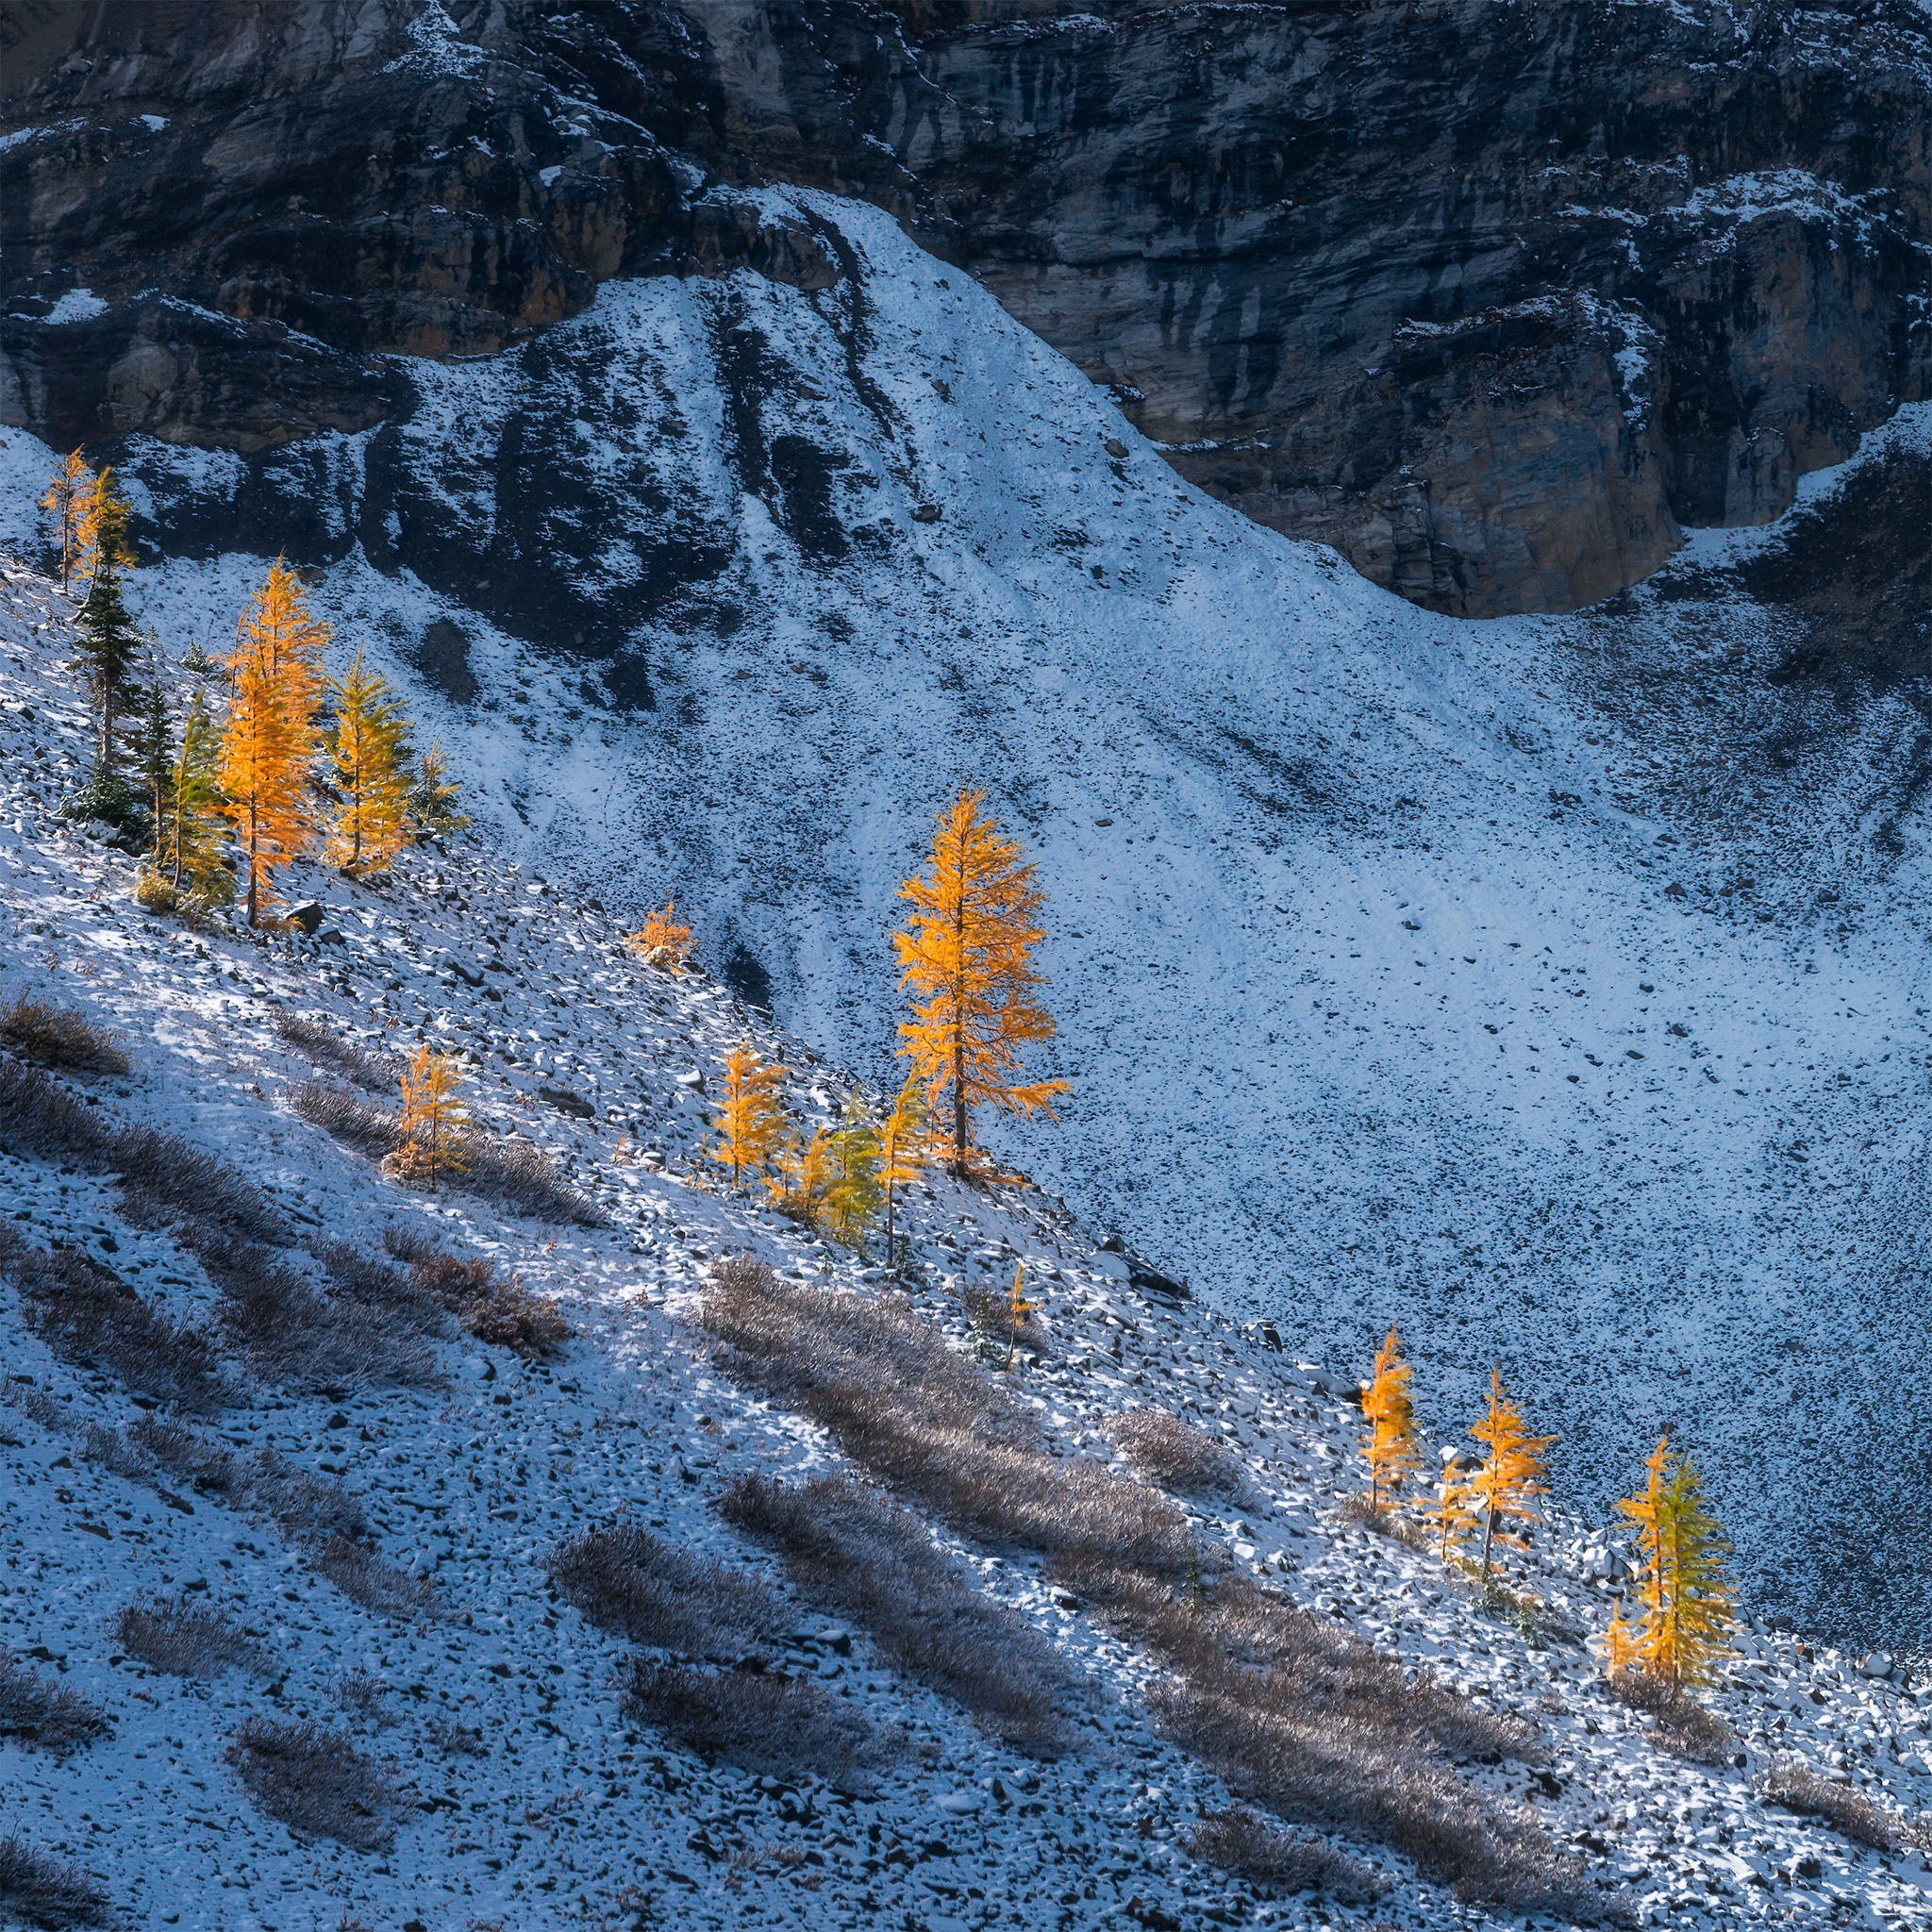 An intimate landscape photograph of golden larch trees in the Canadian Rockies